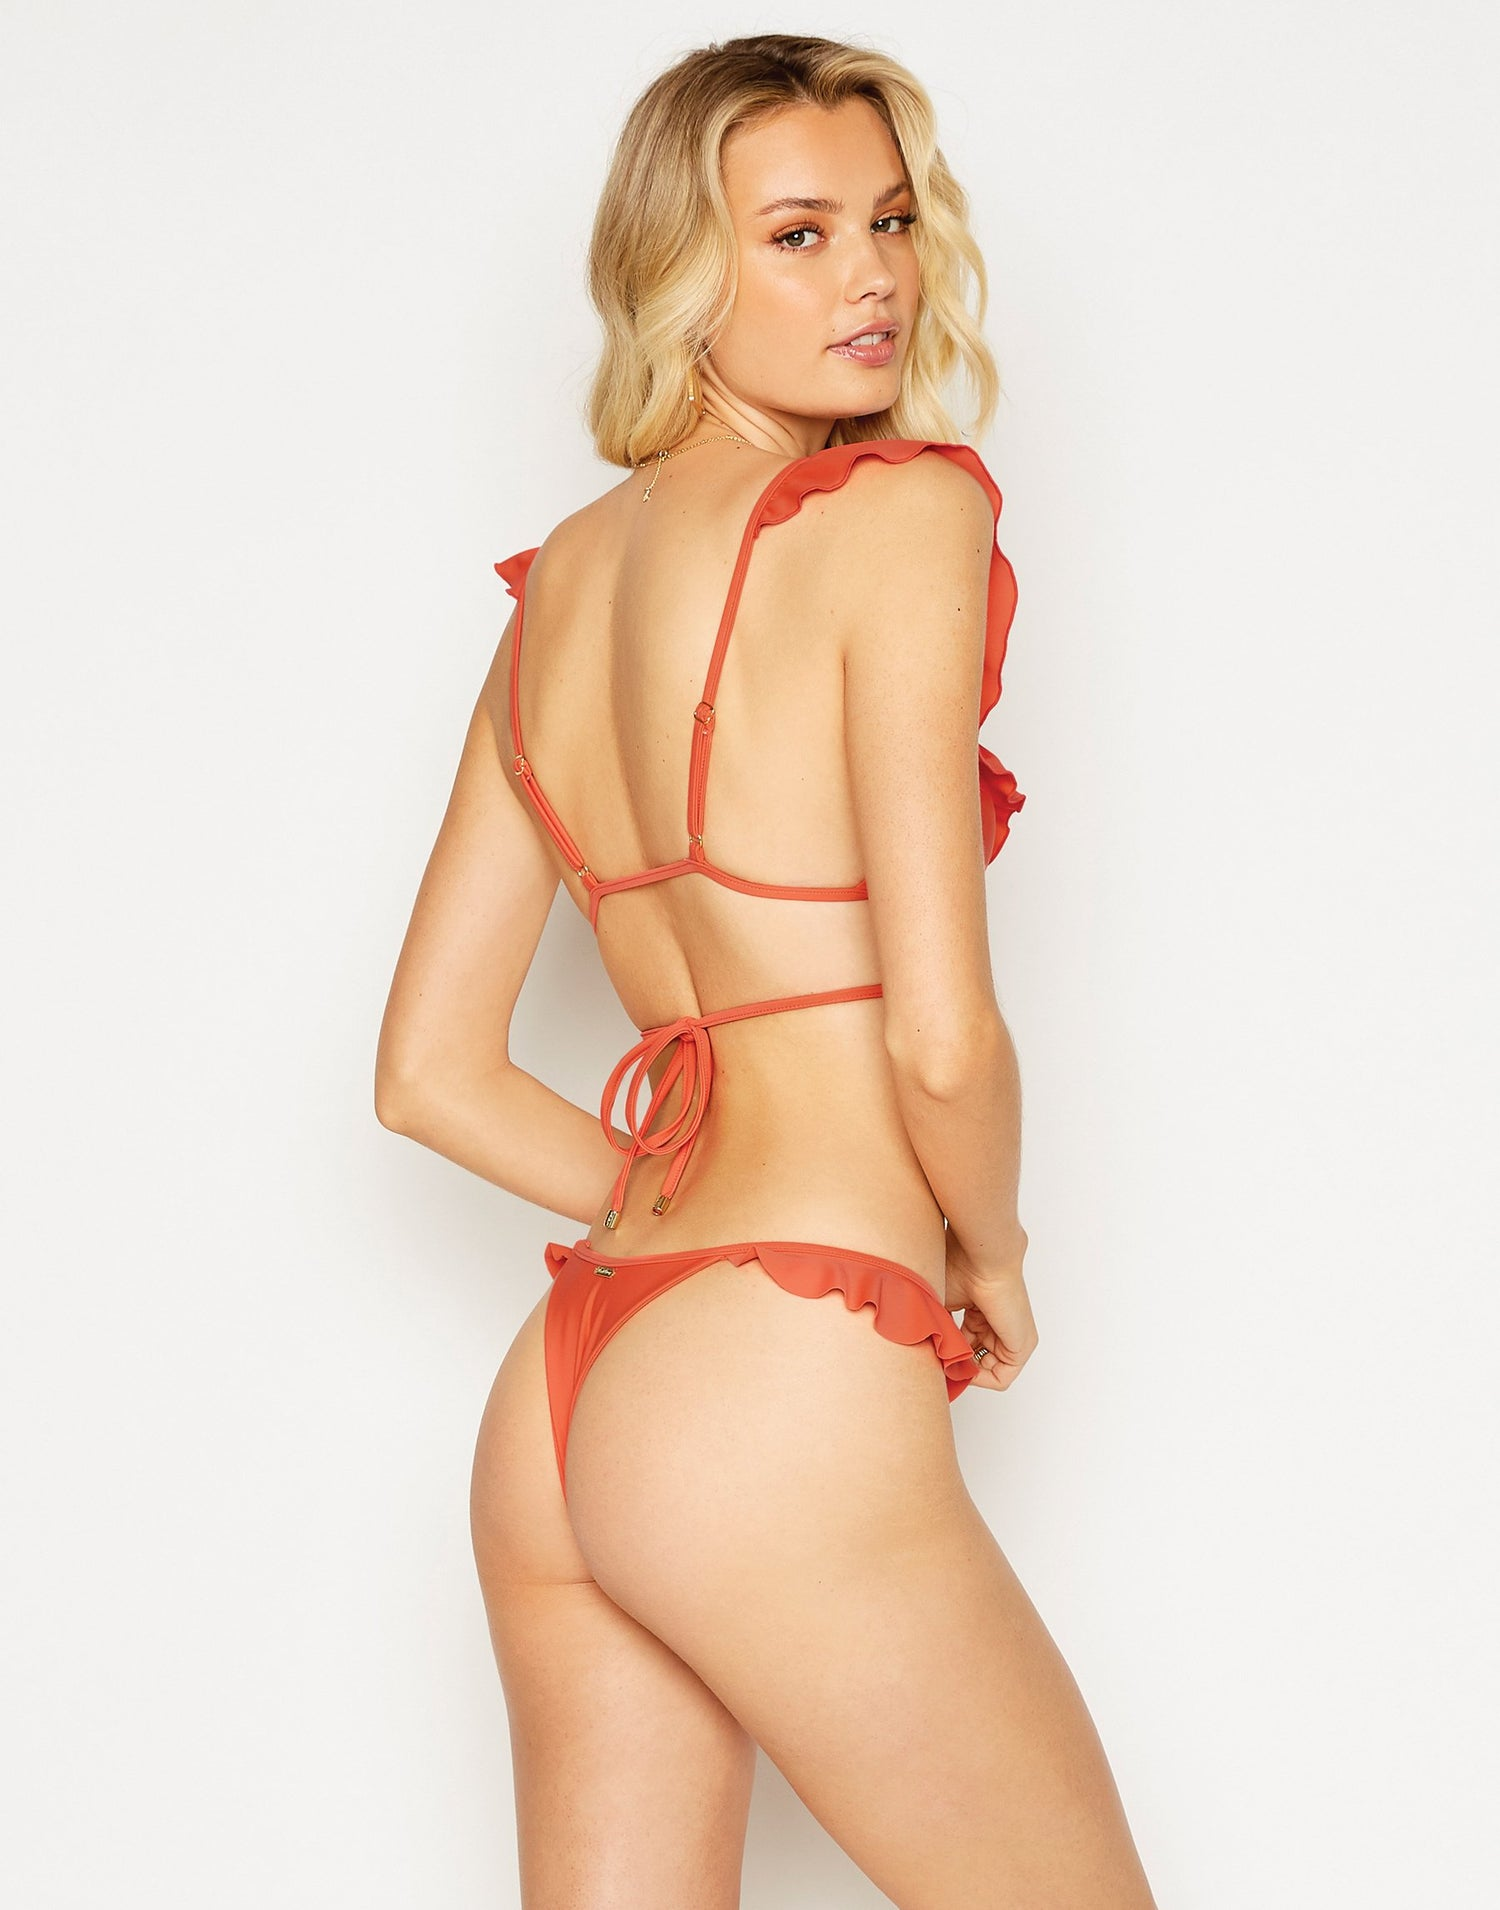 Scarlette Wrap Bikini Top in Poppy Red with Ruffle Detail - back view